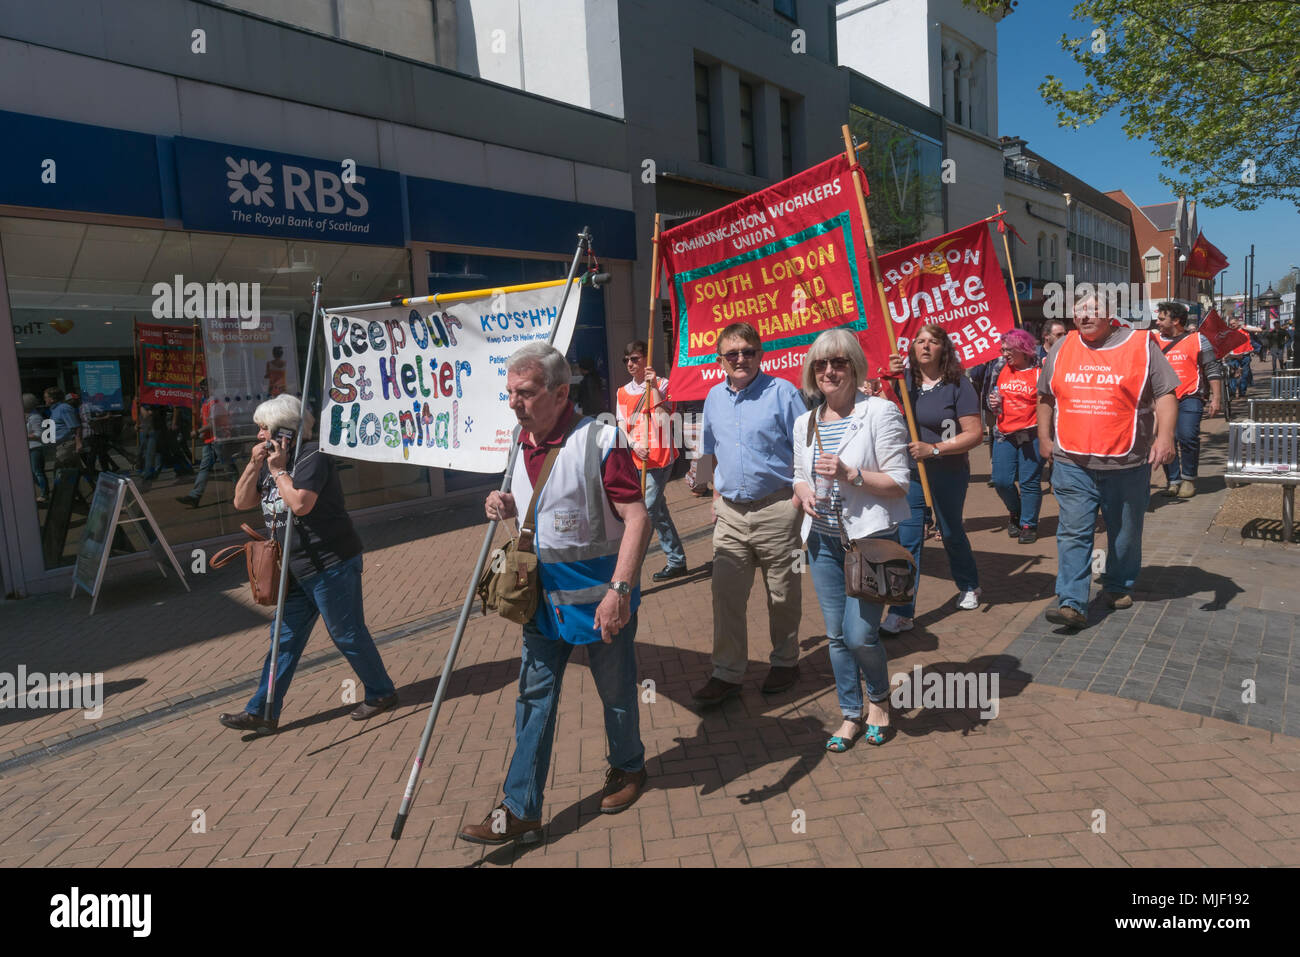 London, UK. 5th March 2018. Trade unionists and other socialists with posters and banners on the march through Croydon town centre to a rally at Ruskin House in celebration of May Day, International Workers Day which is celebrated internationally on May 1st.  Unfortunately May Day is not a Bank Holiday in the UK. The marchers were lead through the main shopping street by a piper and drummer in full Scots dress, attracting the attention of shoppers and others on the busy street. I left the march before it reached Ruskin House where there was to be a rally with speakers including Ted Knight. Pet - Stock Image